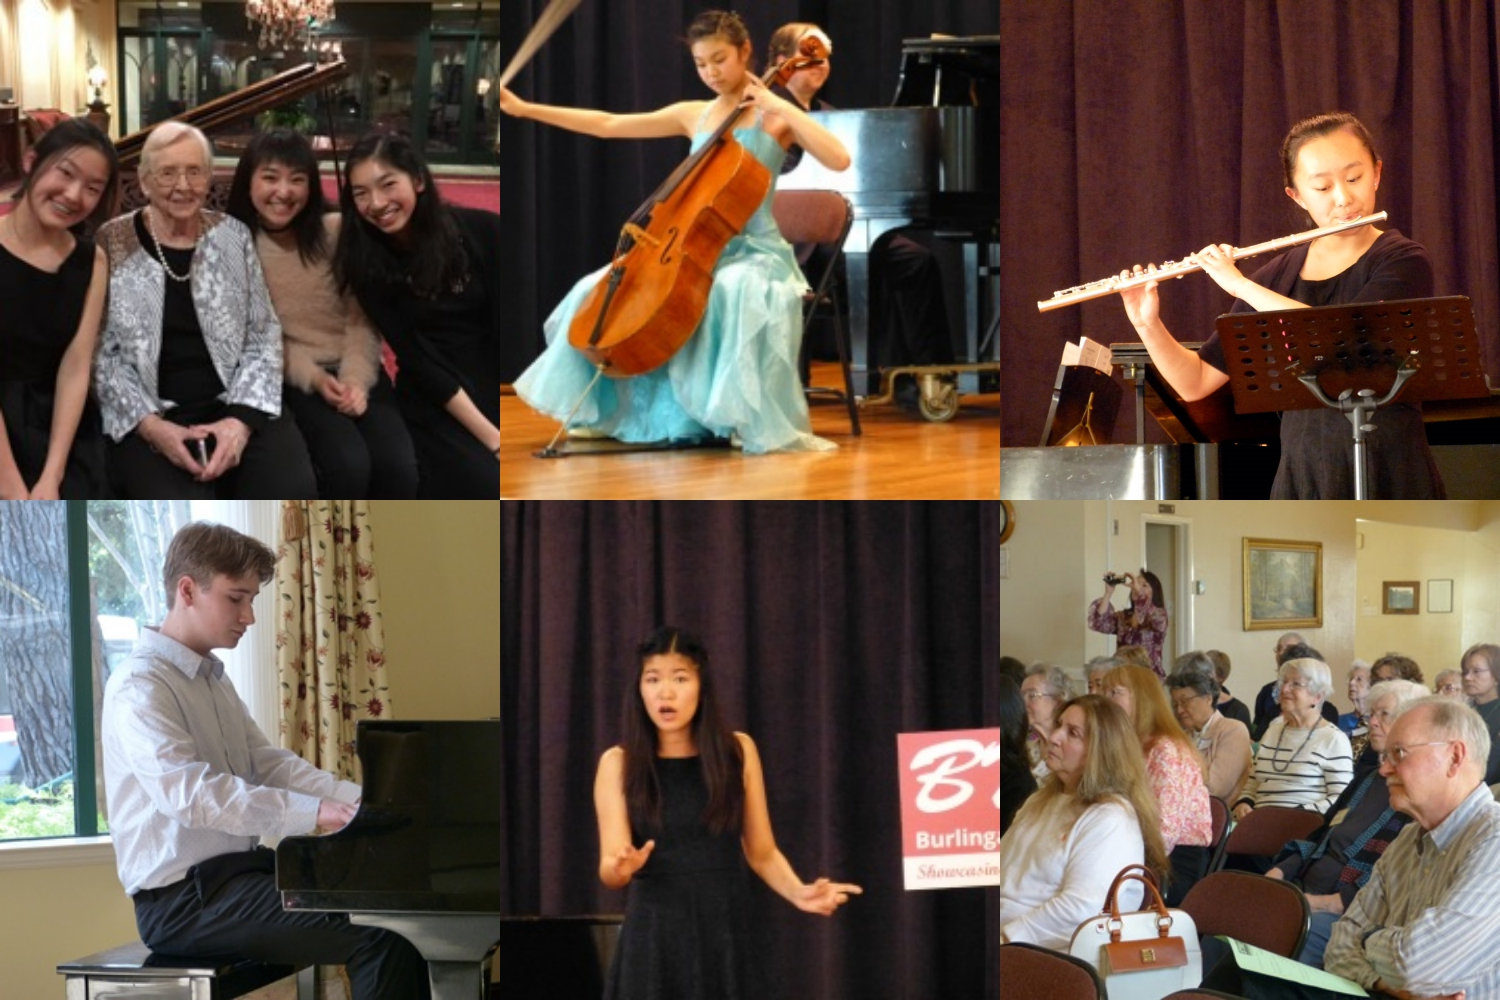 Our Mission - The major purpose of BMC is to provide competitive performance opportunities in a warm and supportive environment for gifted young musicians.